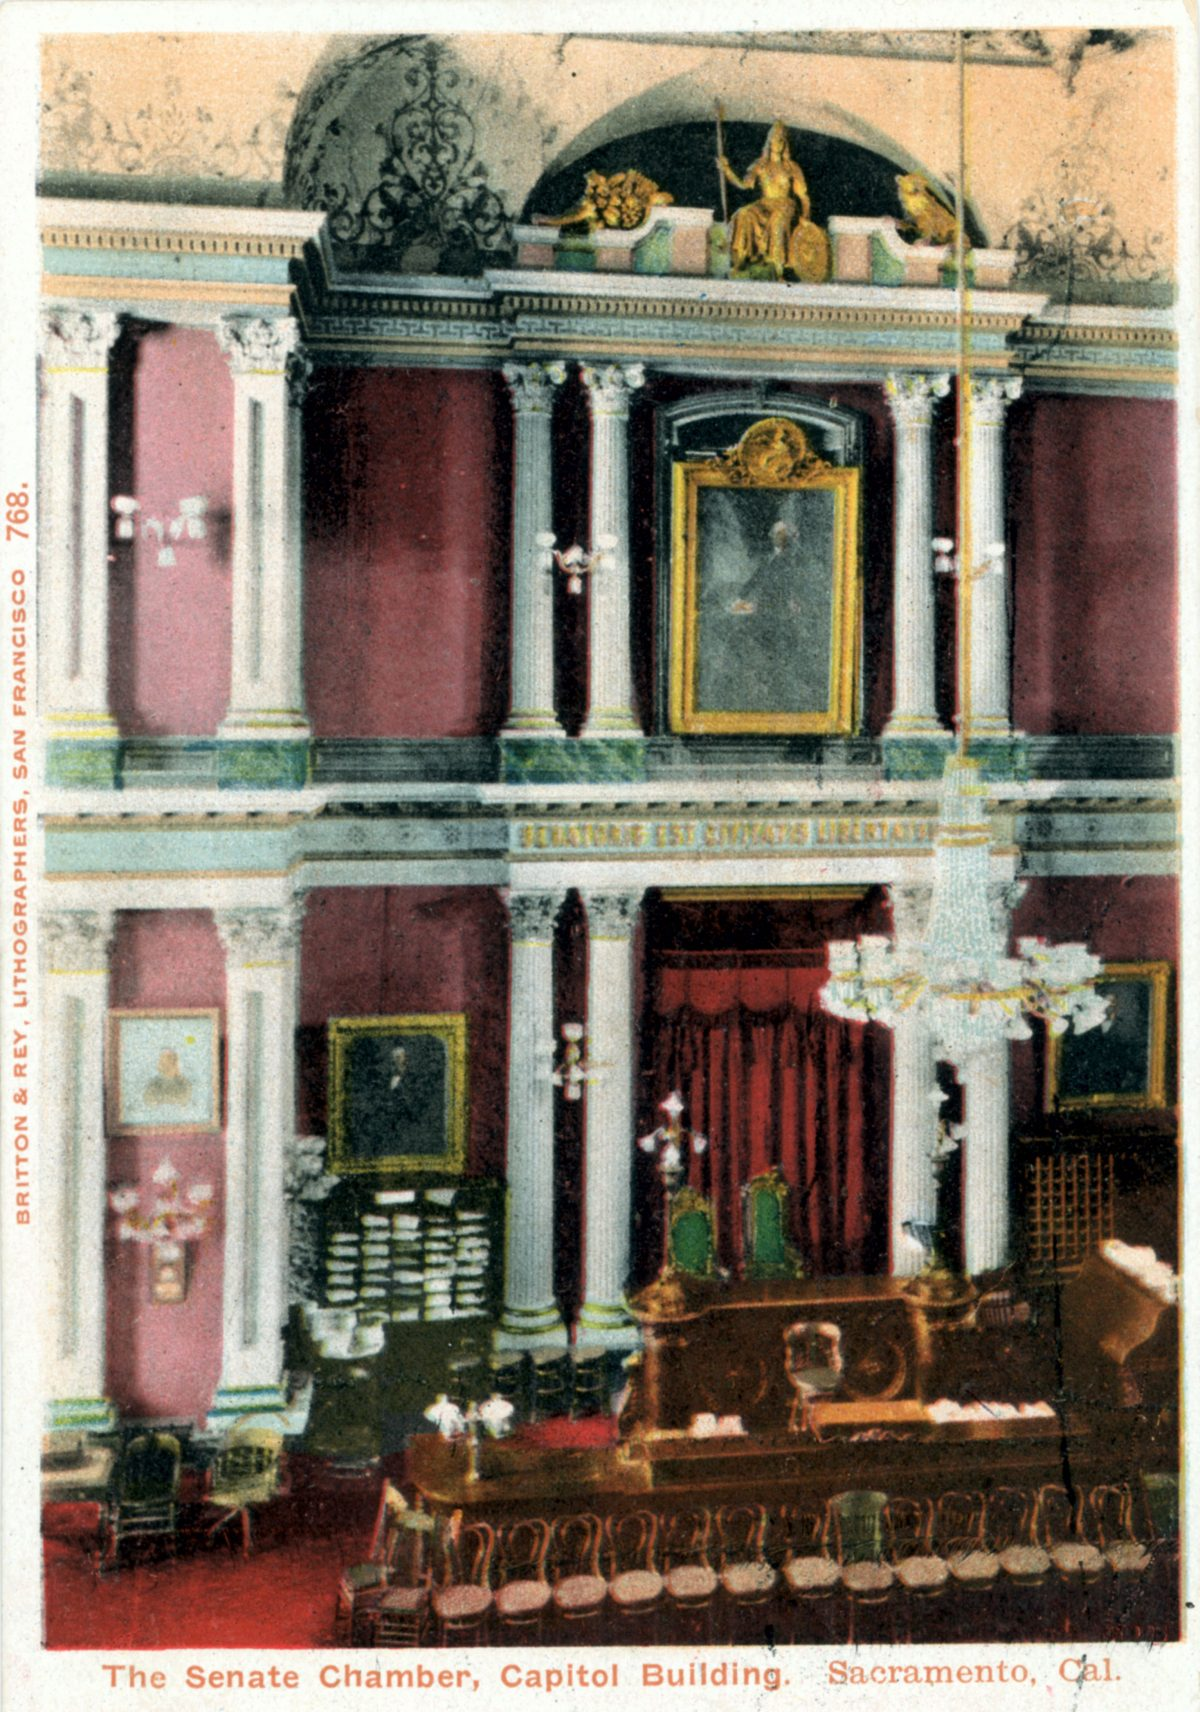 Senate dais postcard 1910s